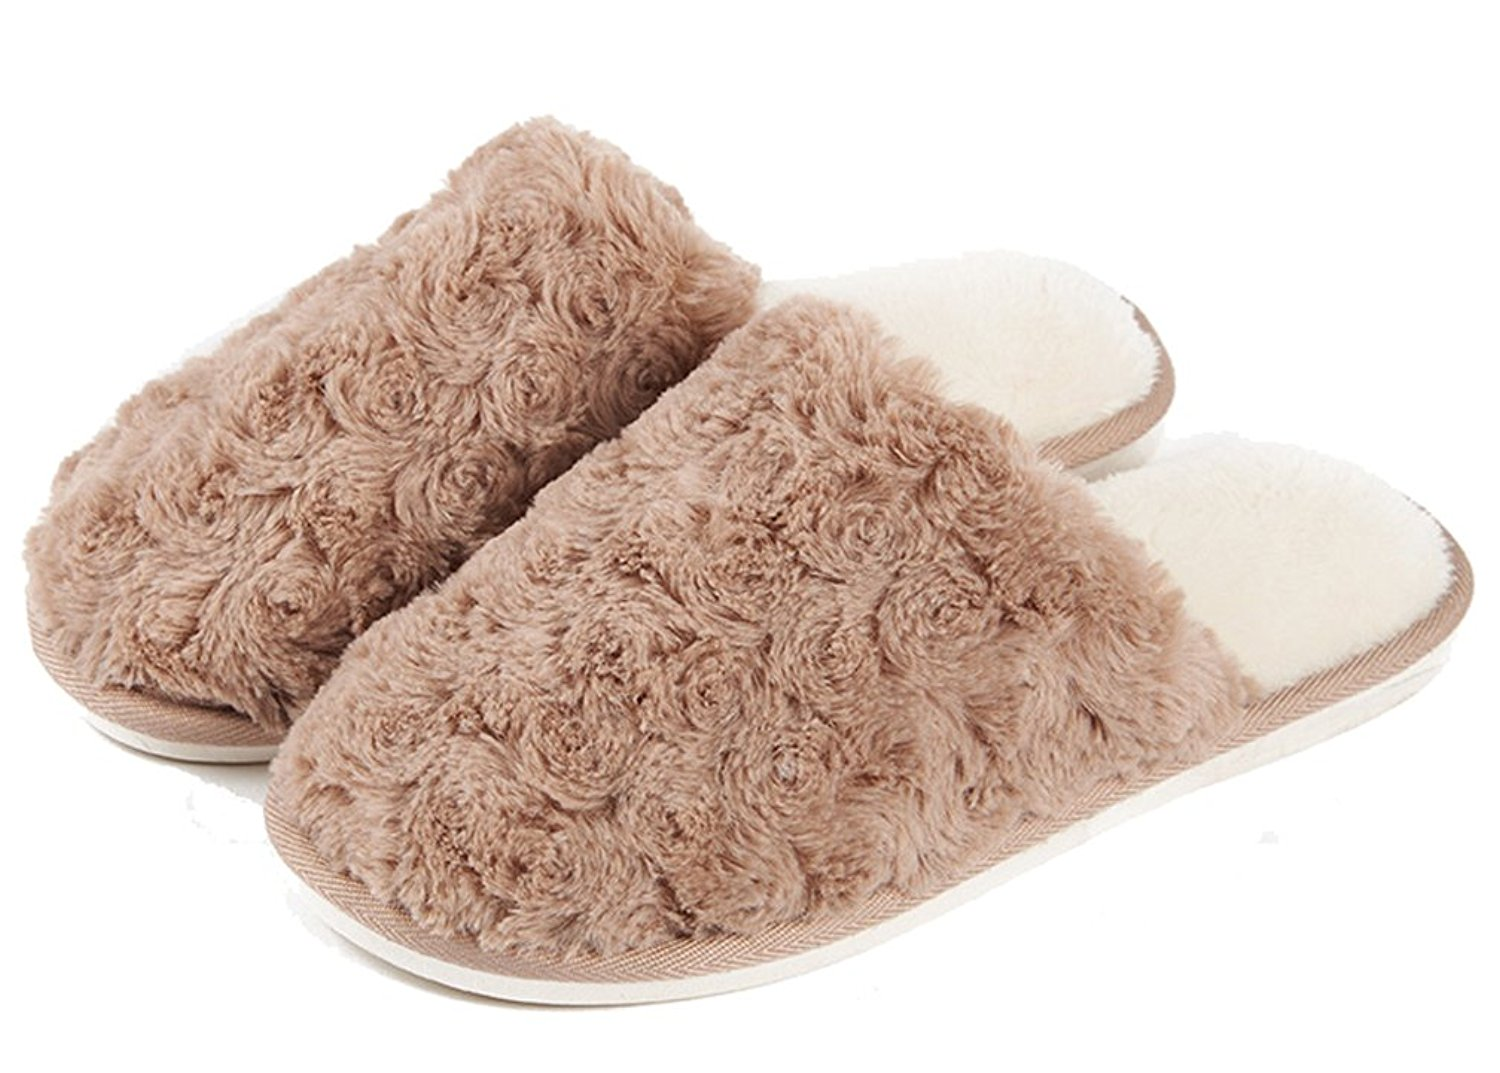 0f6be83bac68 Get Quotations · Cattior Mens Warm House Indoor Slippers Fluffy Slippers